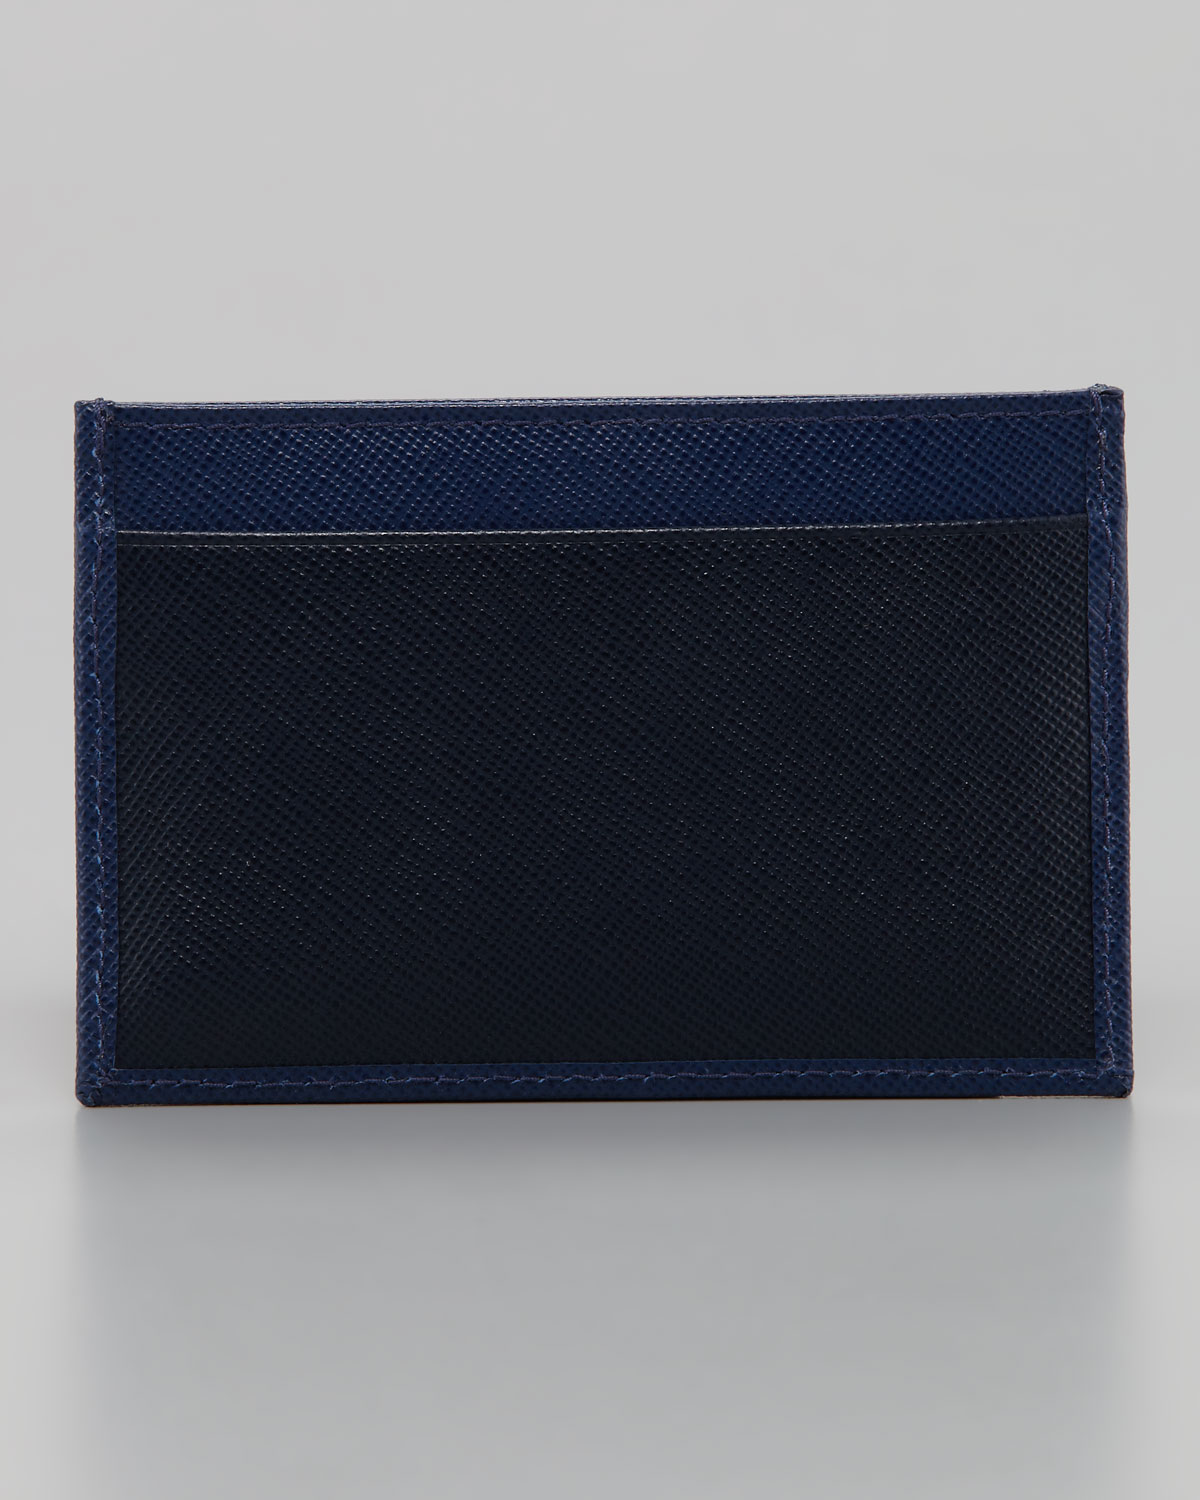 Lyst - Prada Leather Business Card Case in Blue for Men